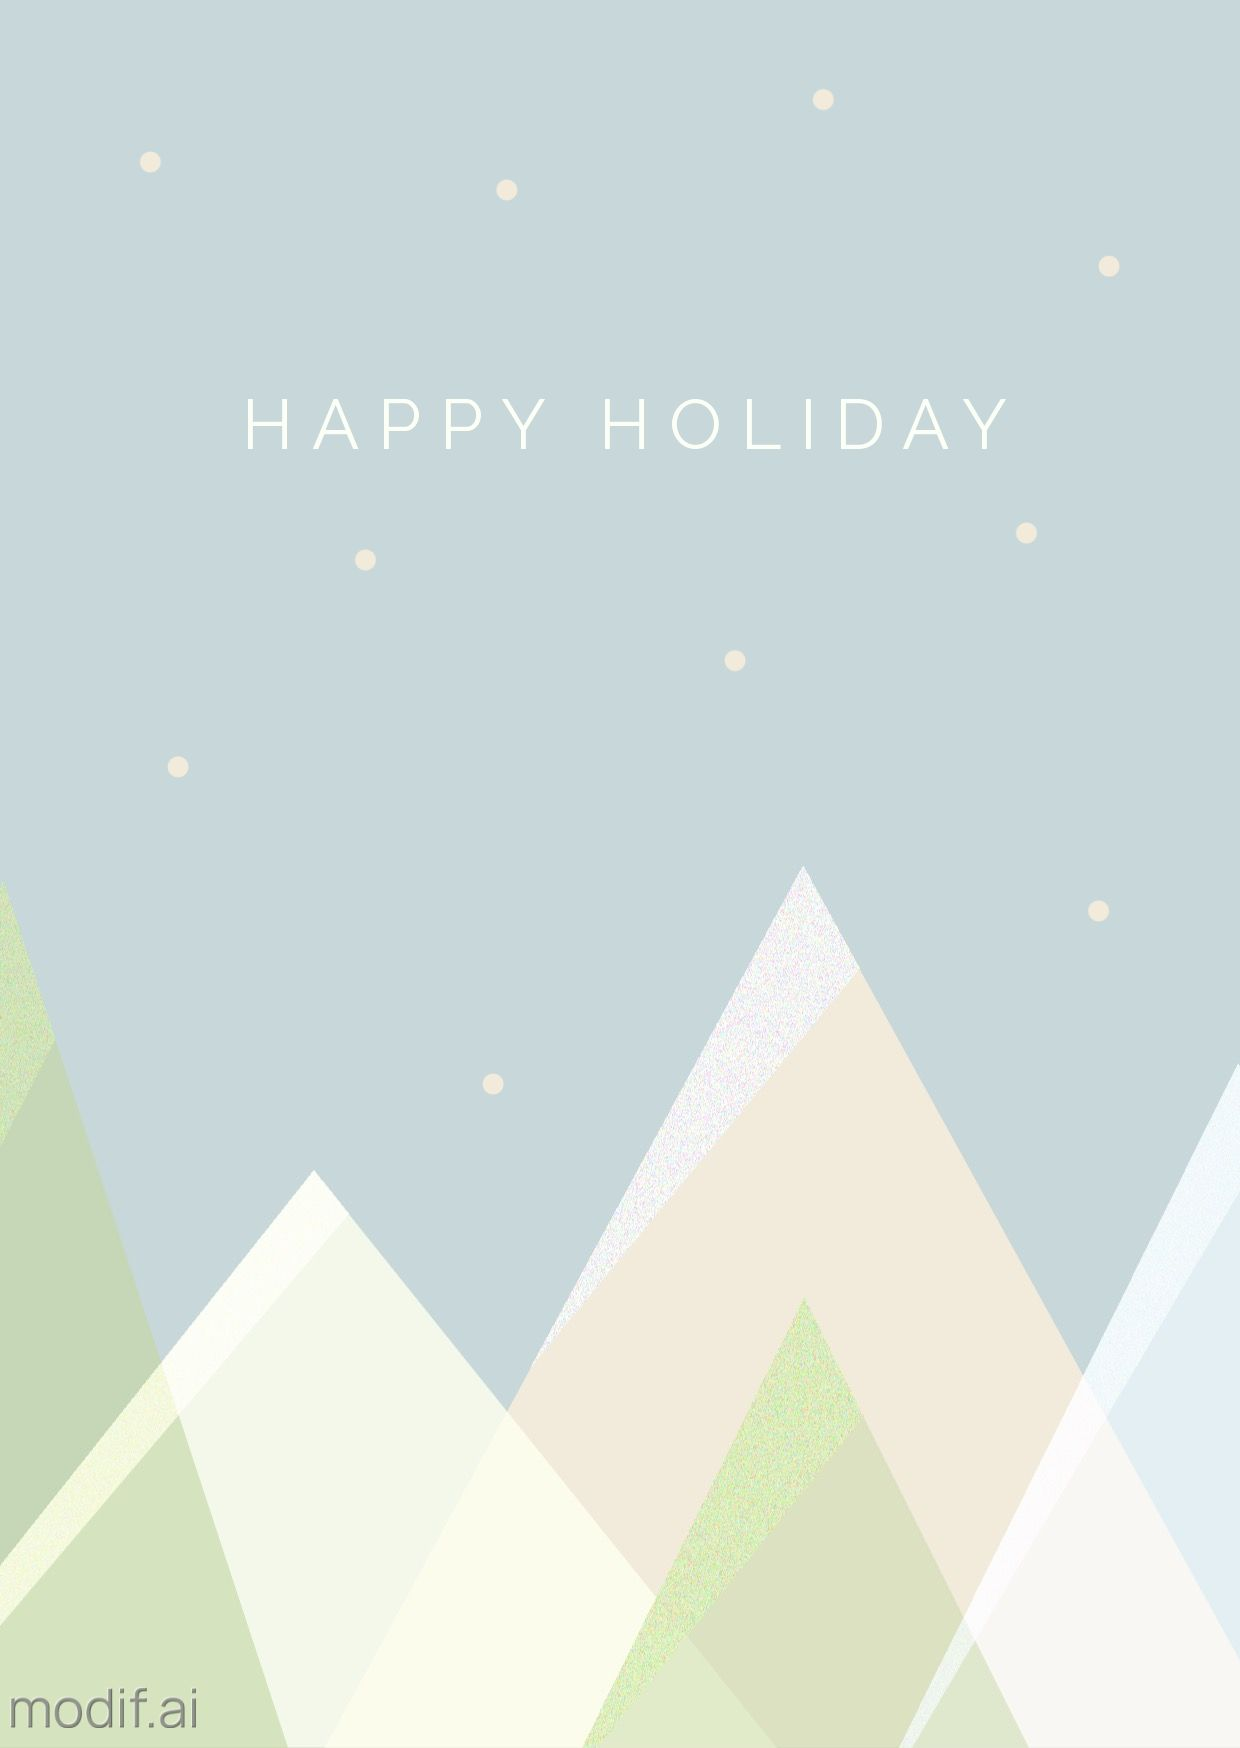 Winter holiday Greeting Card Template